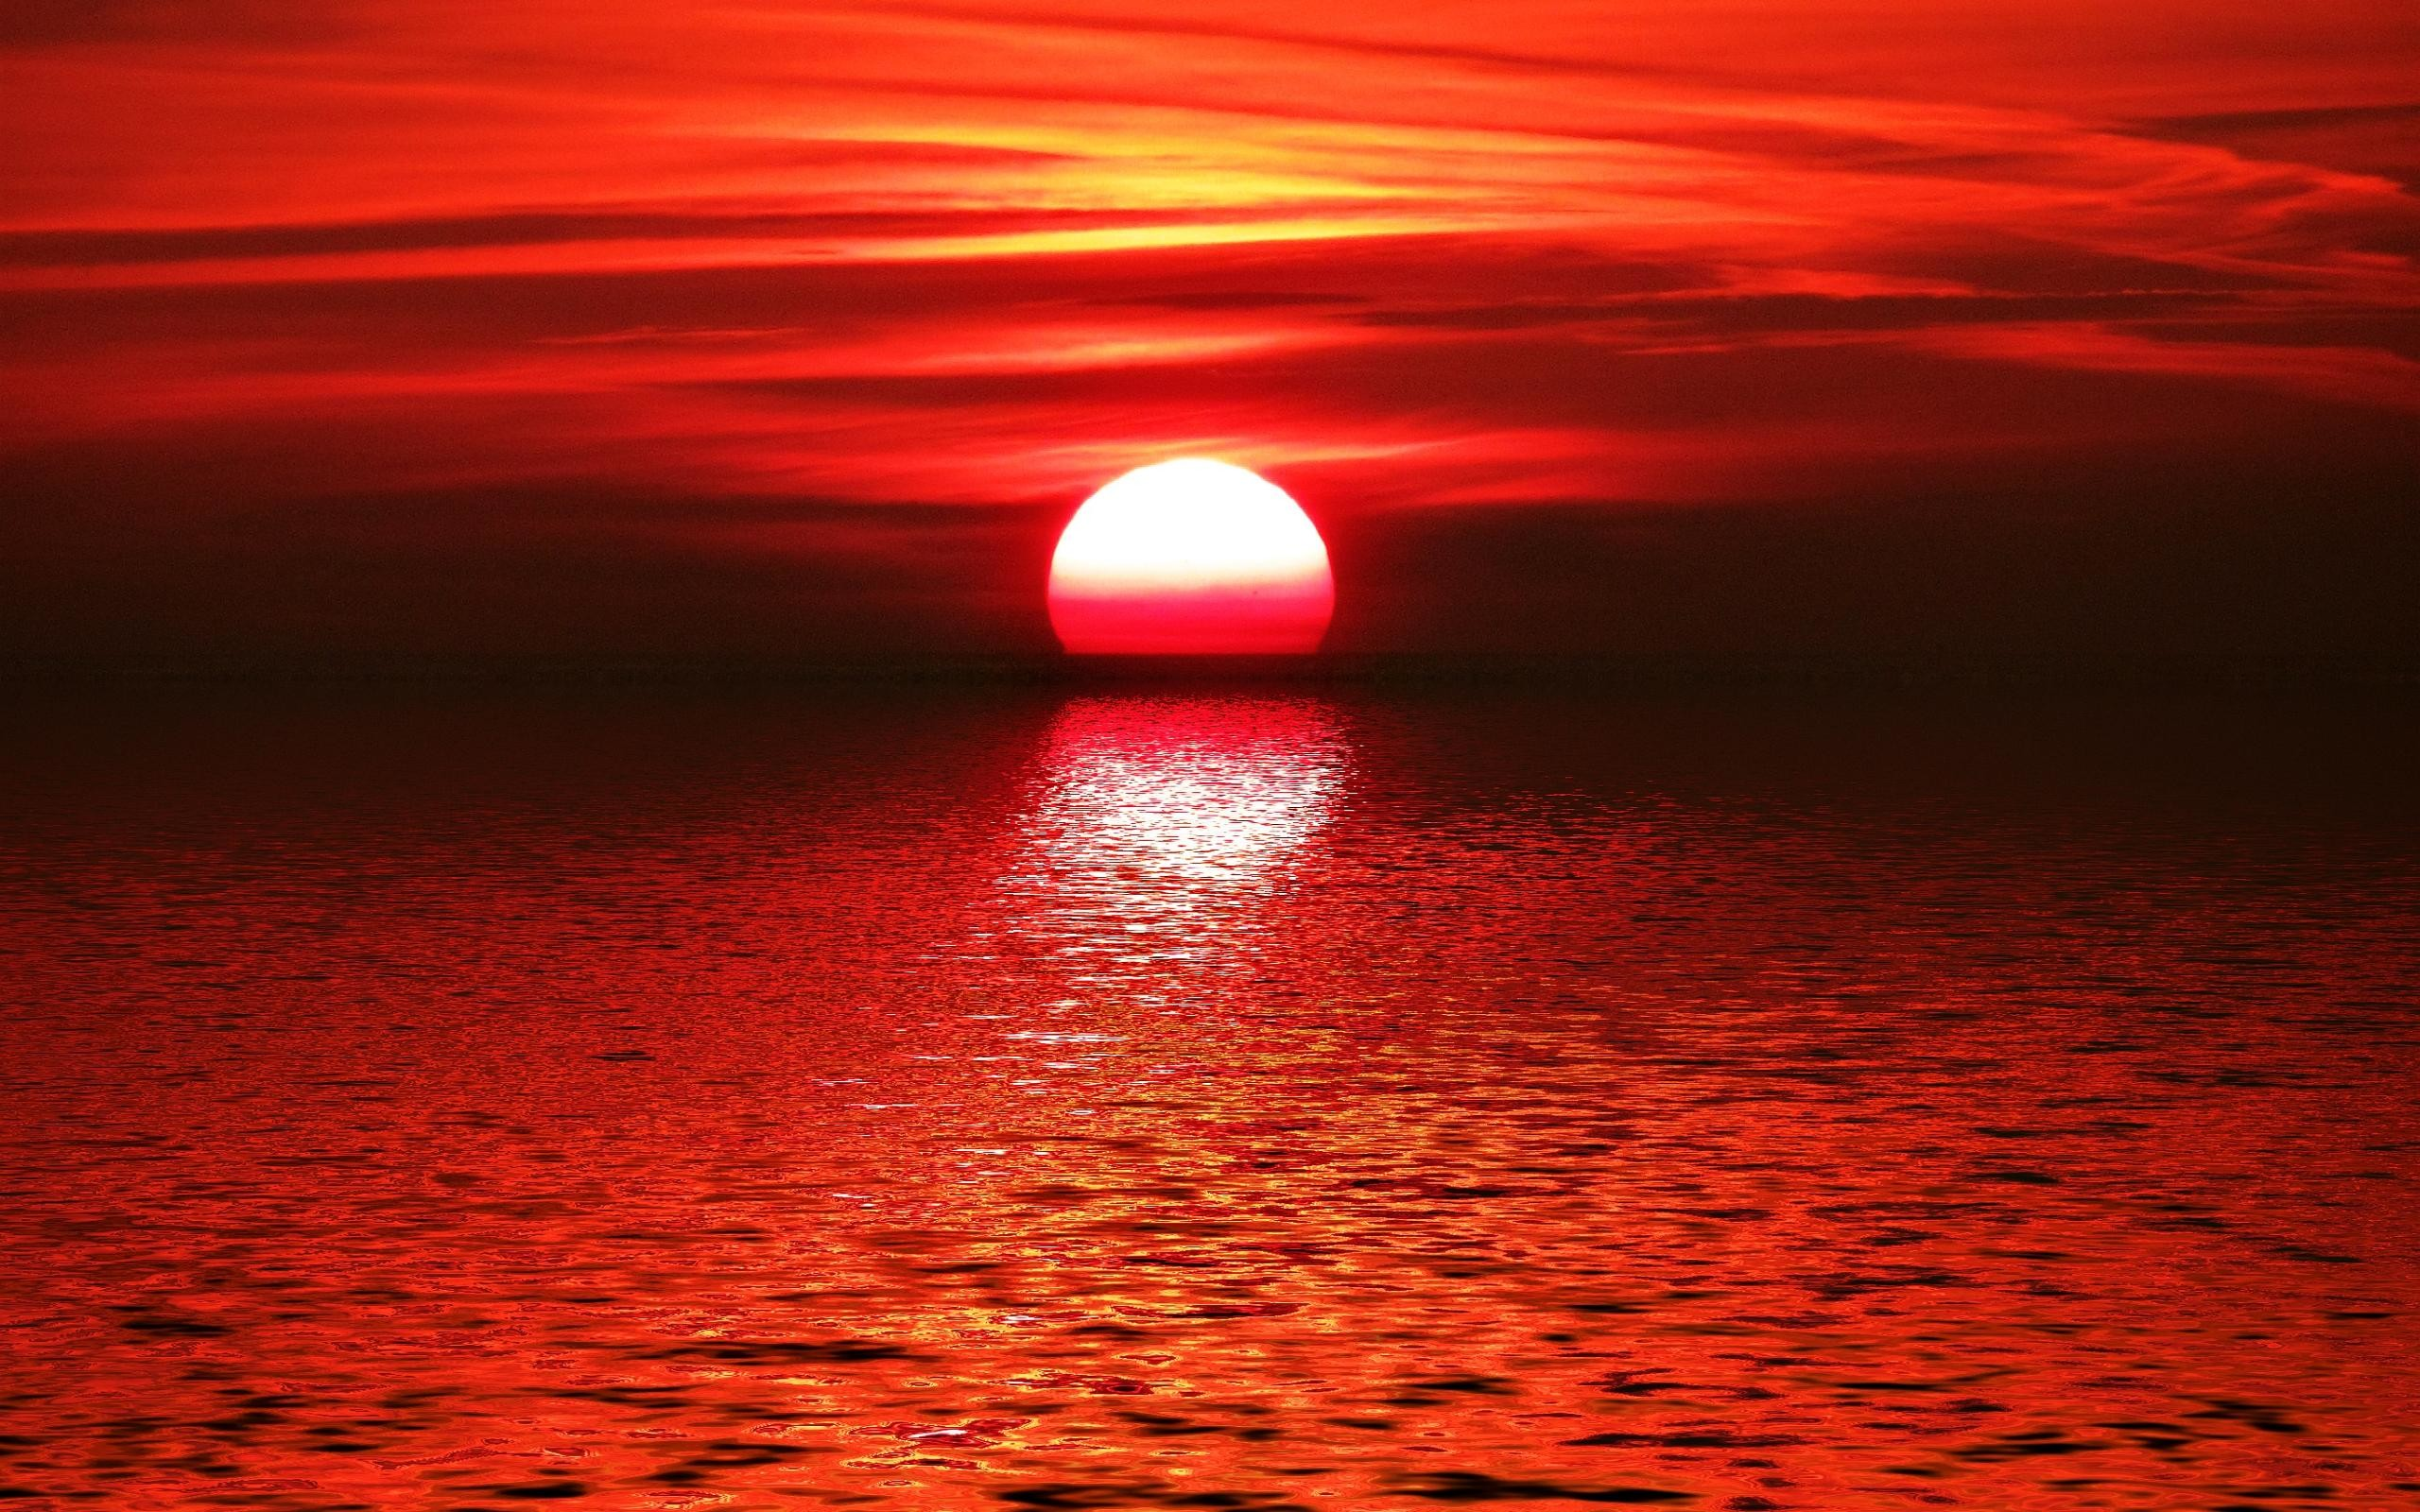 Red sunset hd